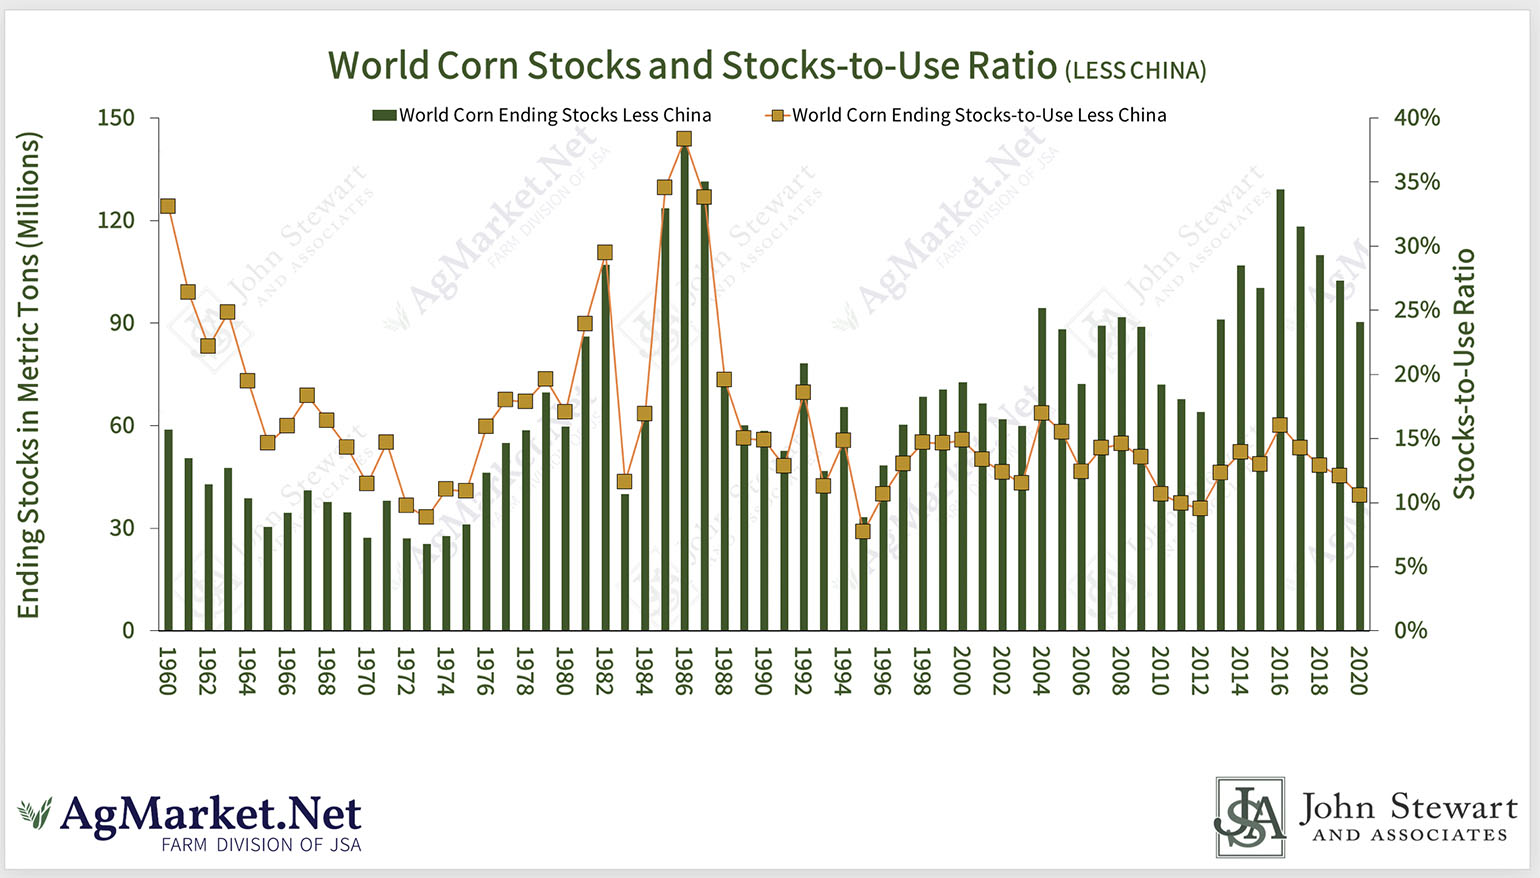 World Corn Stocks & Stocks To Use Ratio Less China